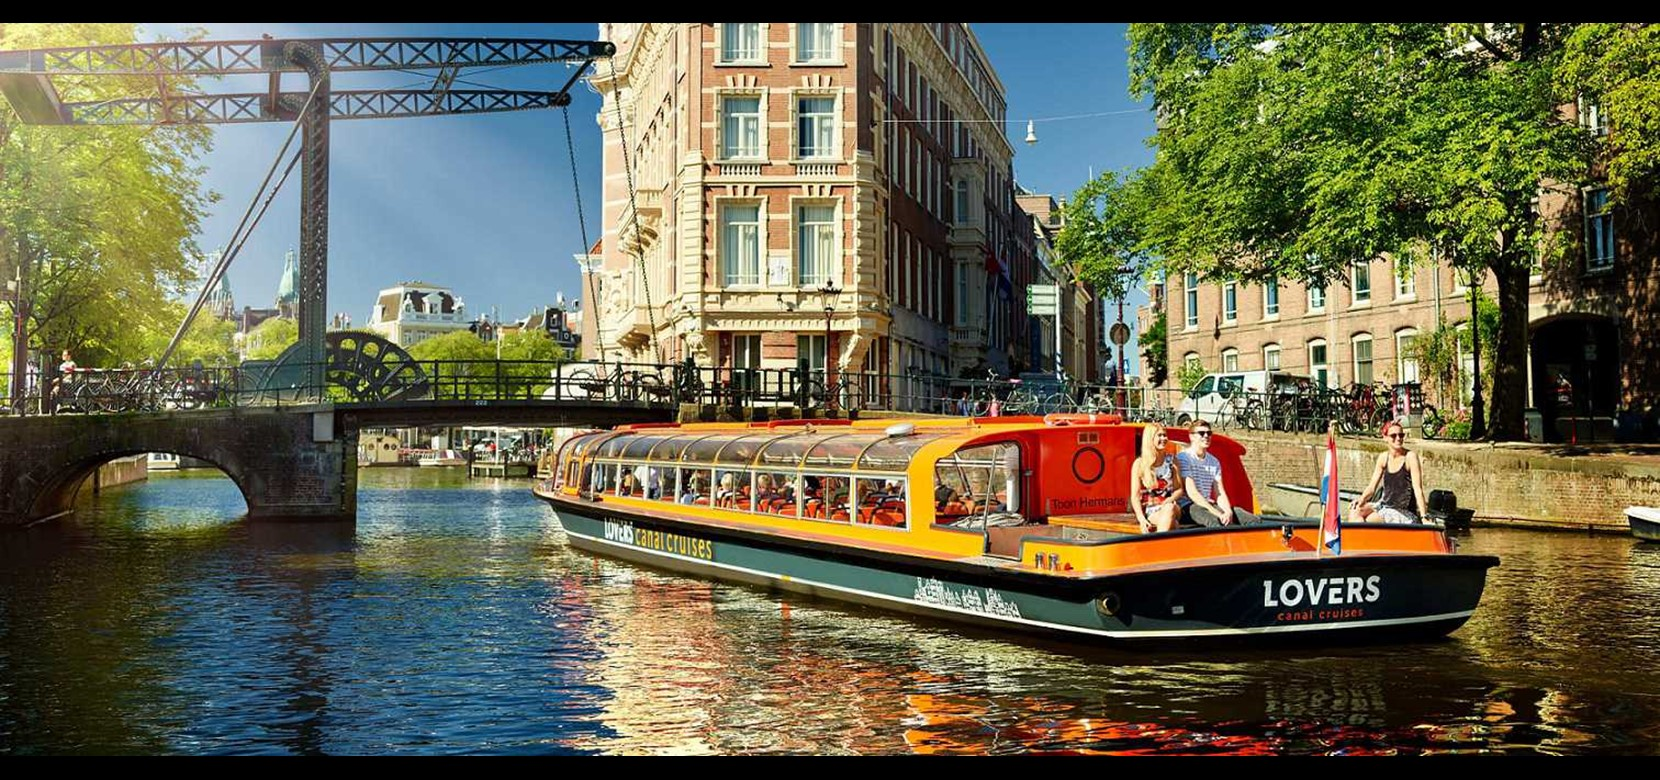 Free Amsterdam Canal Cruise + Countryside & Windmills Tour (dep. 08:45)